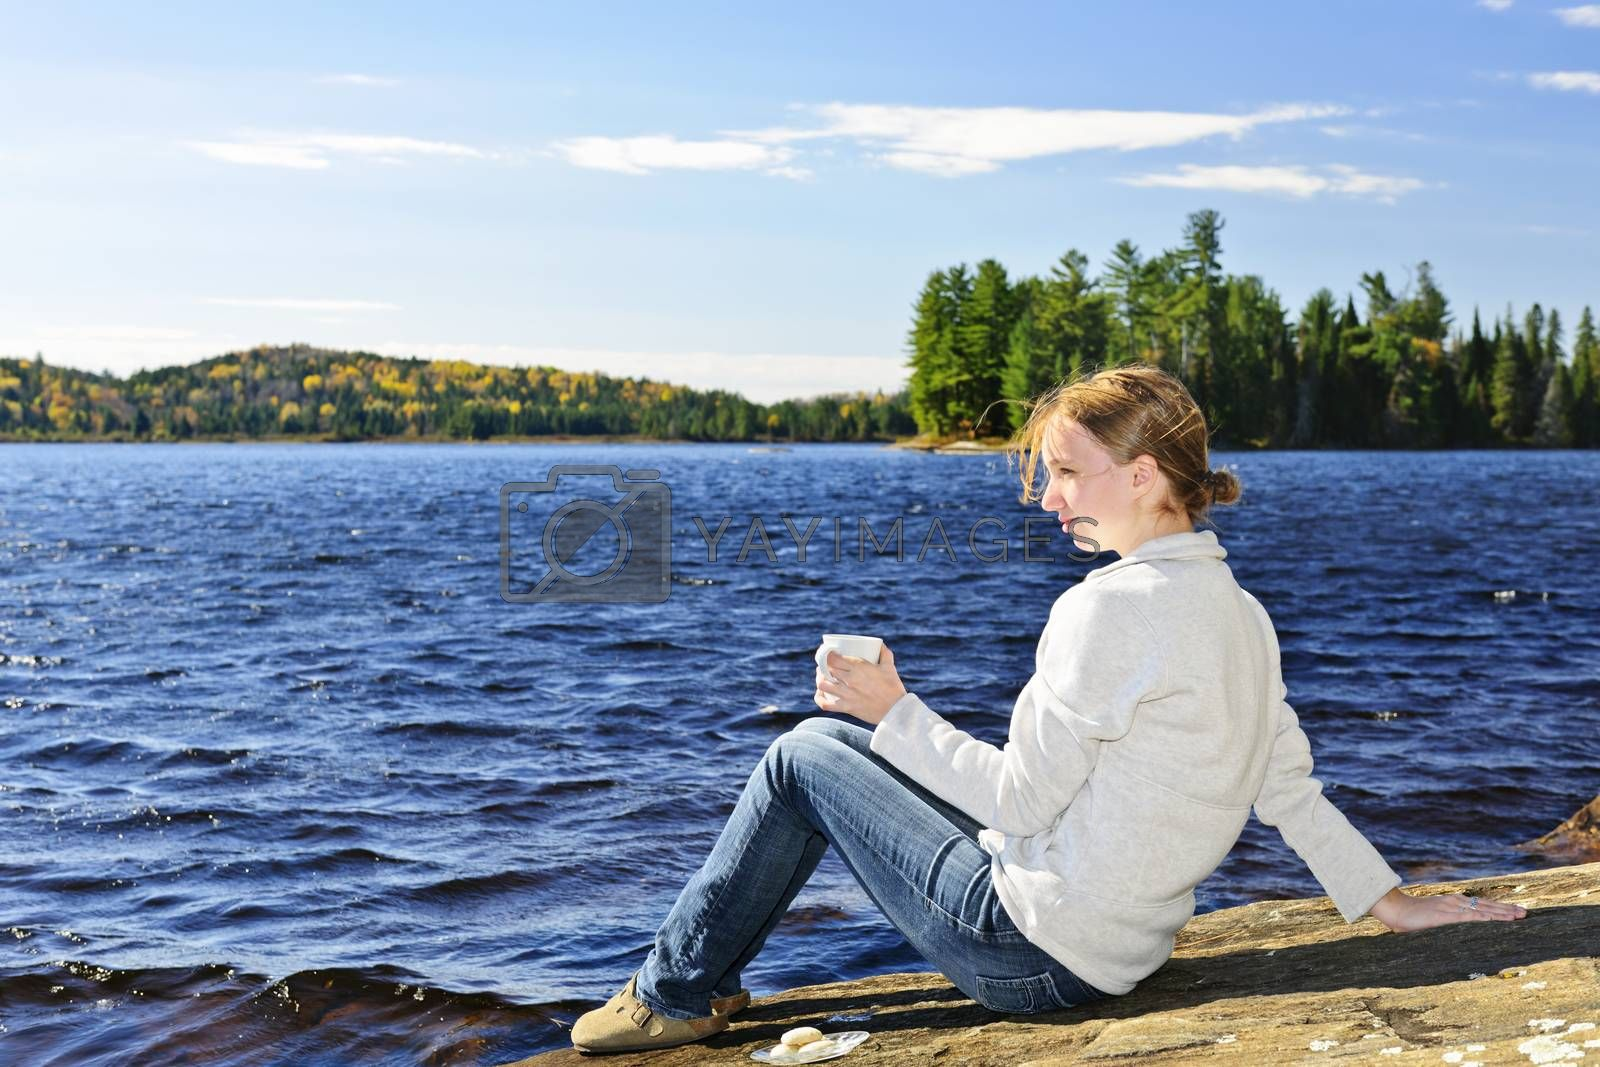 Young woman sitting with beverage on rock relaxing by beautiful lake in Algonquin Park, Canada.